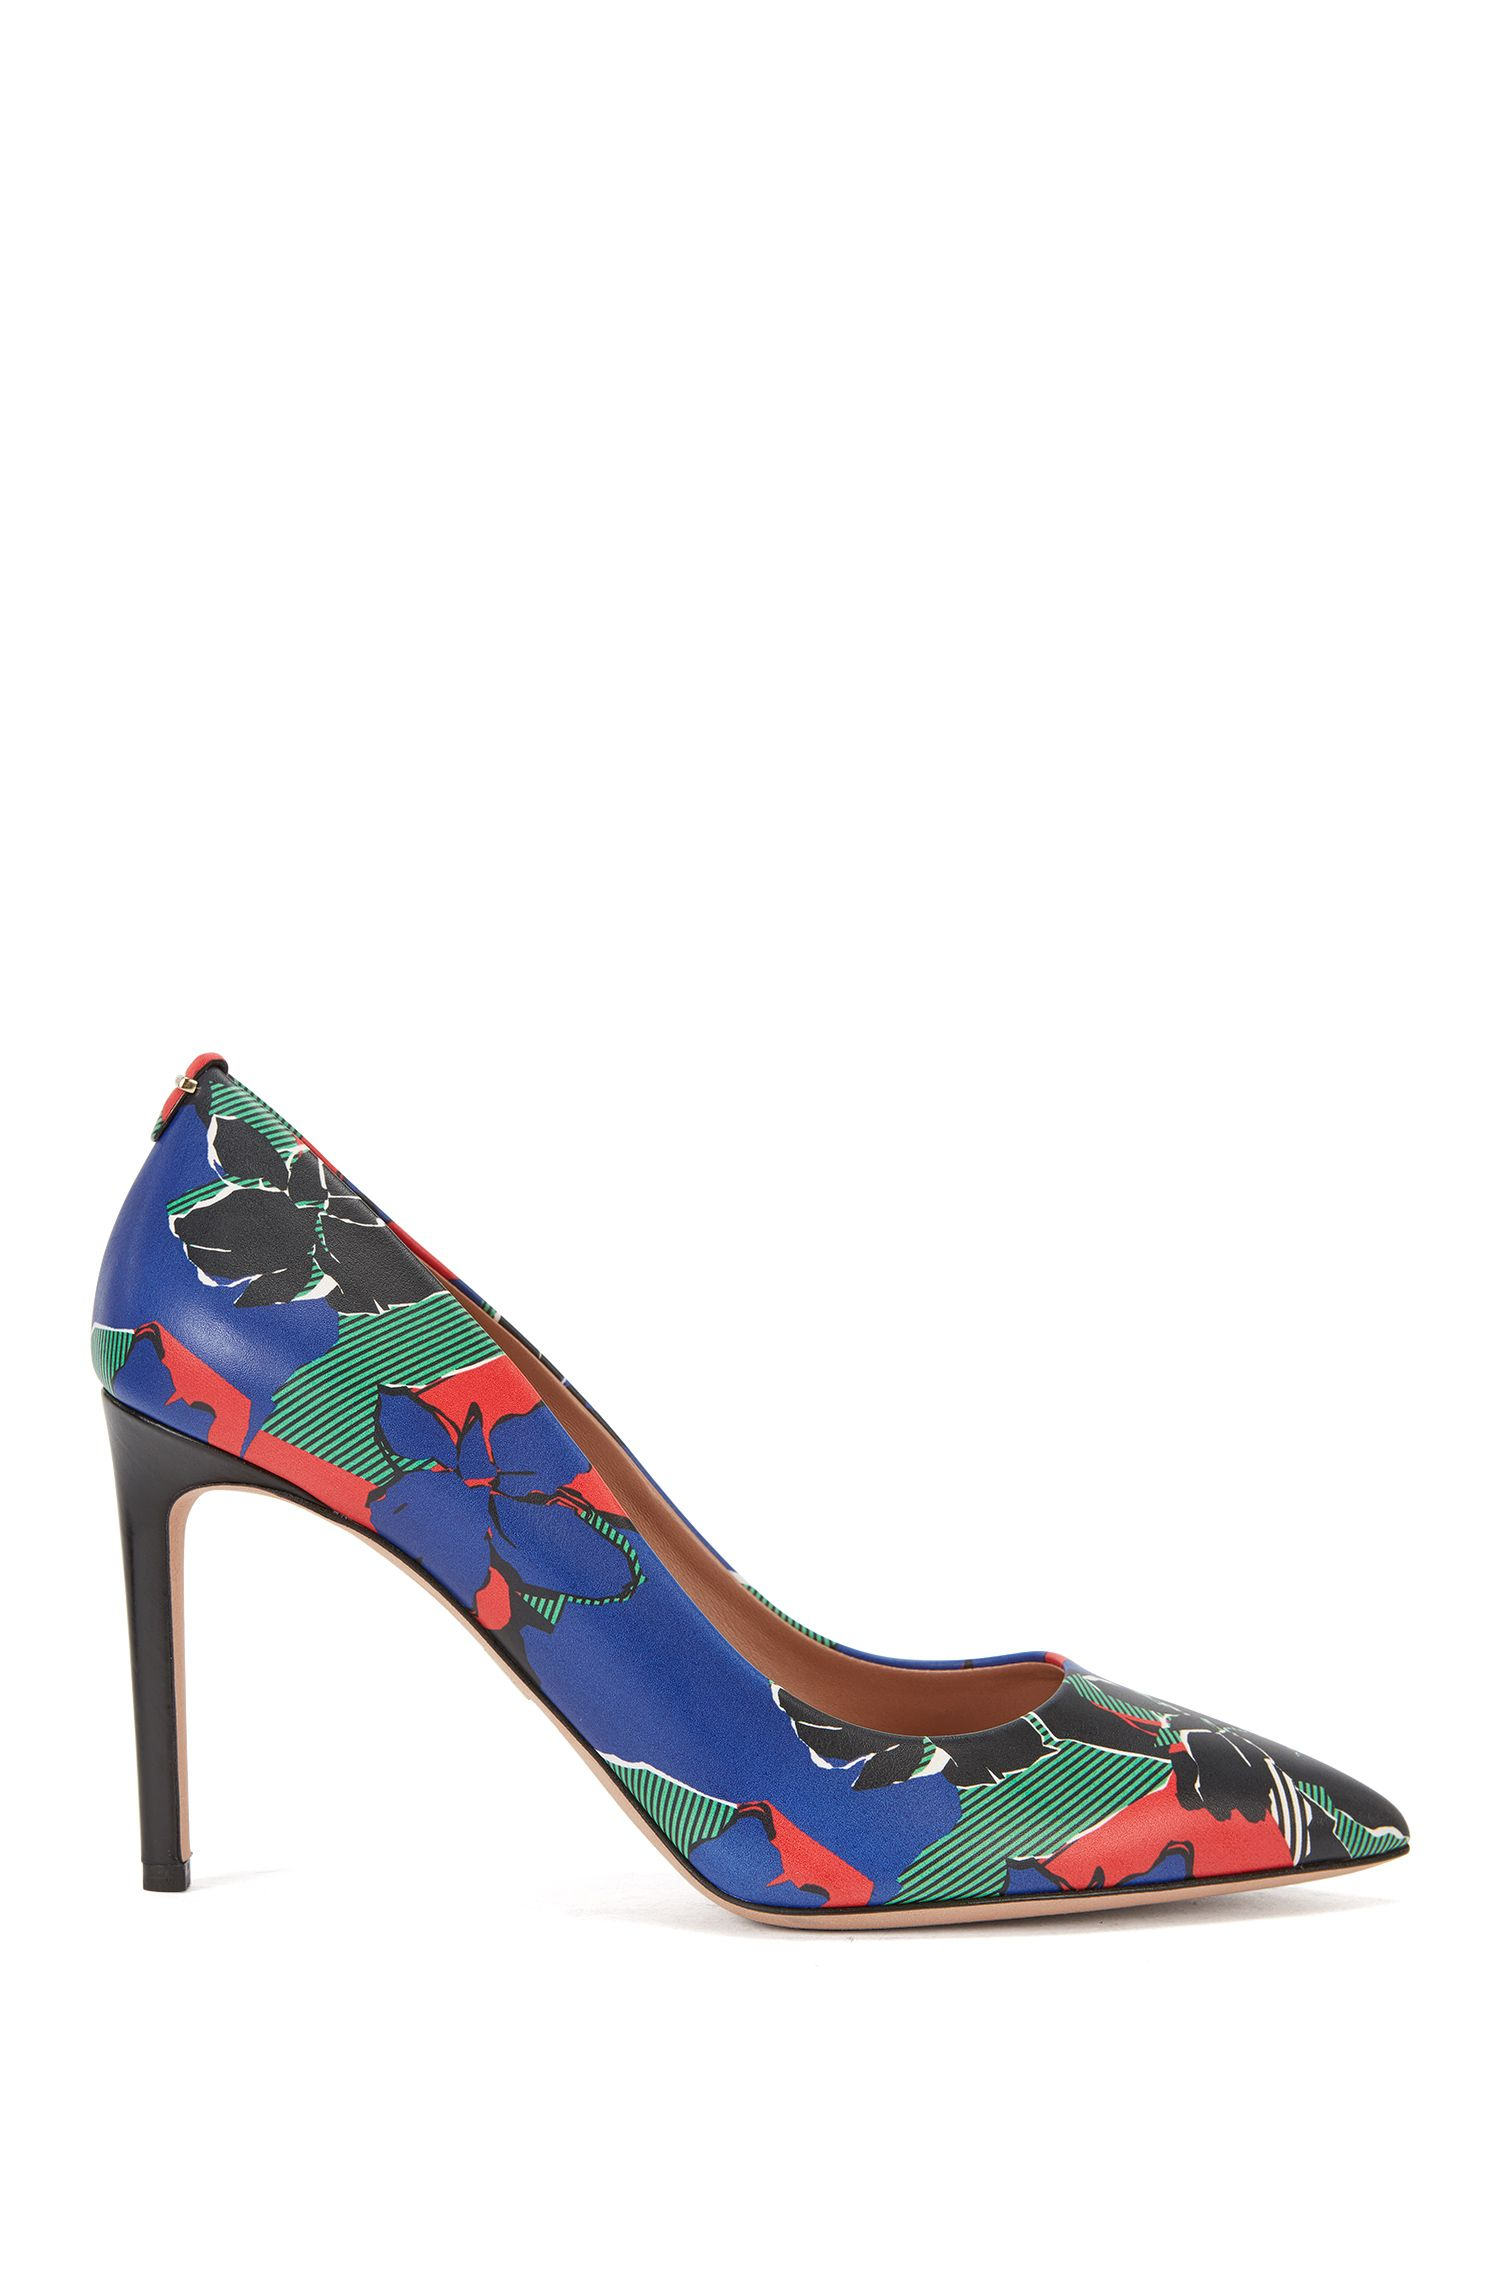 'Staple P' | Italian Calfskin Printed Pump